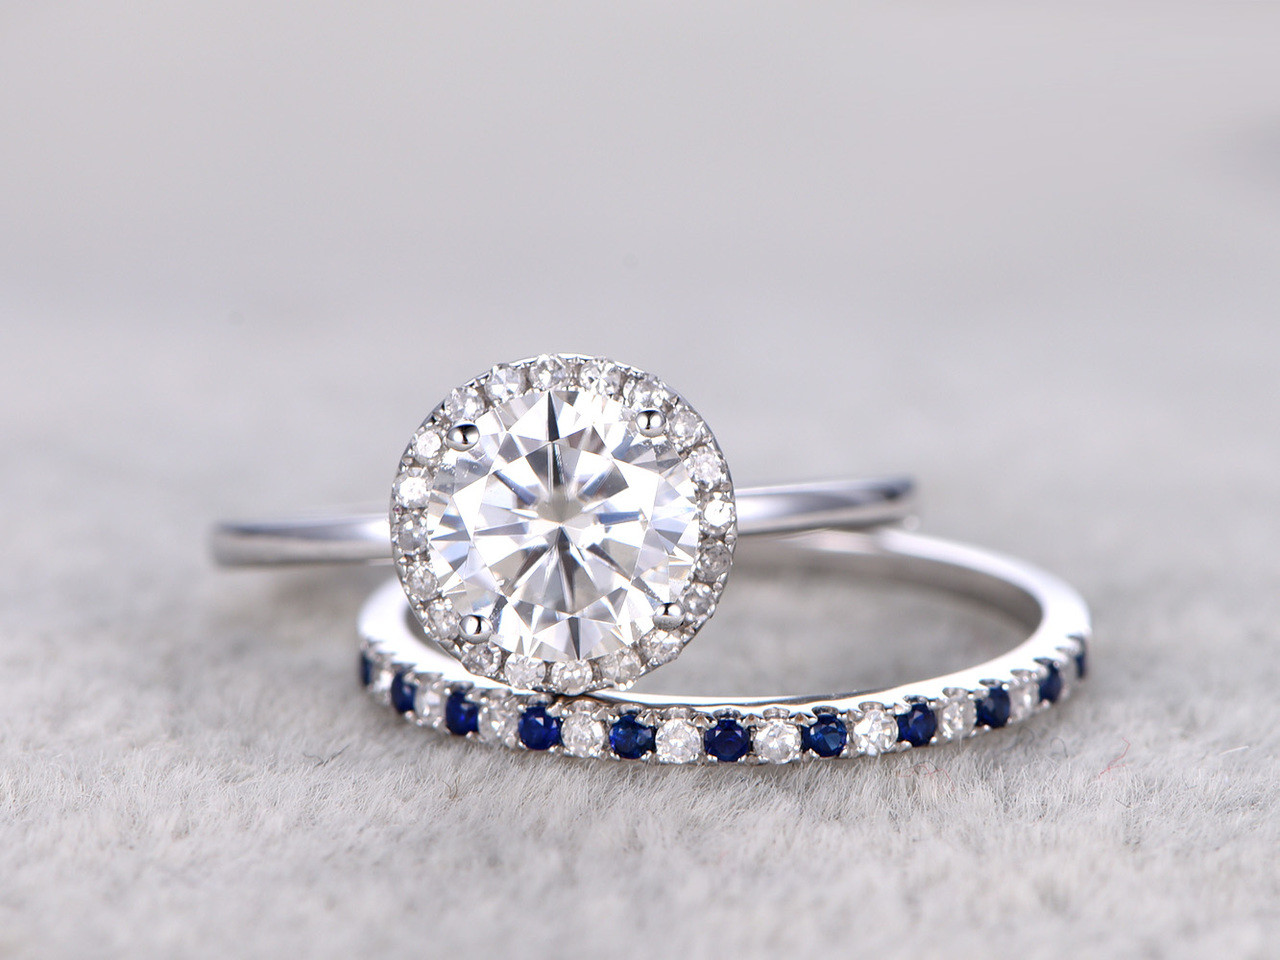 Bon Moissanite Engagement Ring Set Diamond And Sapphire Wedding Band White Gold  Pave Matching 14K/18K